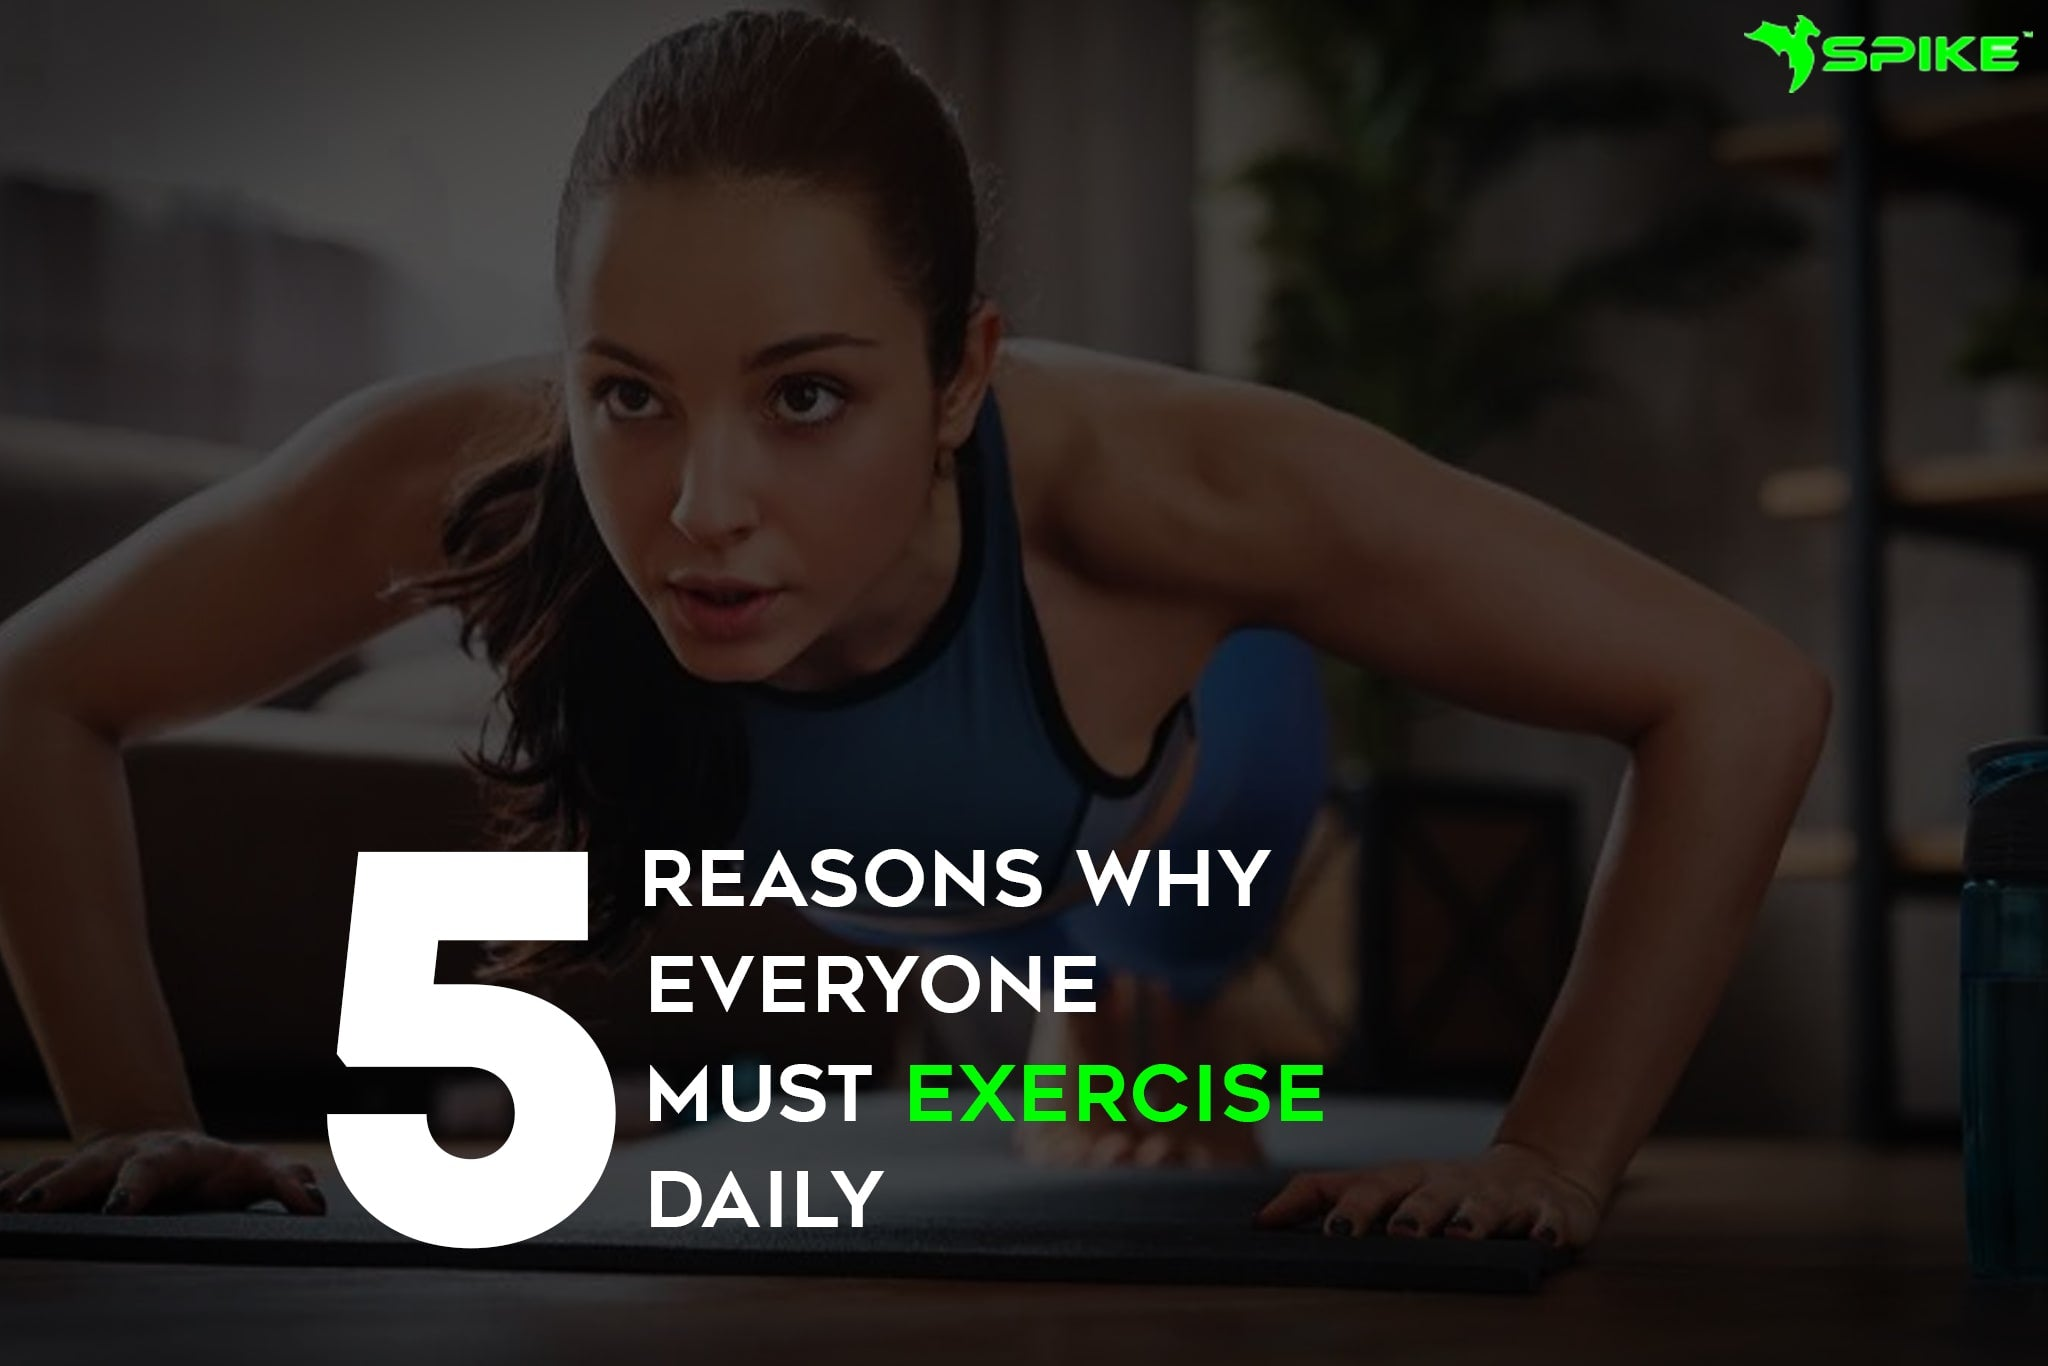 5 REASONS WHY EVERYONE MUST EXERCISE DAILY